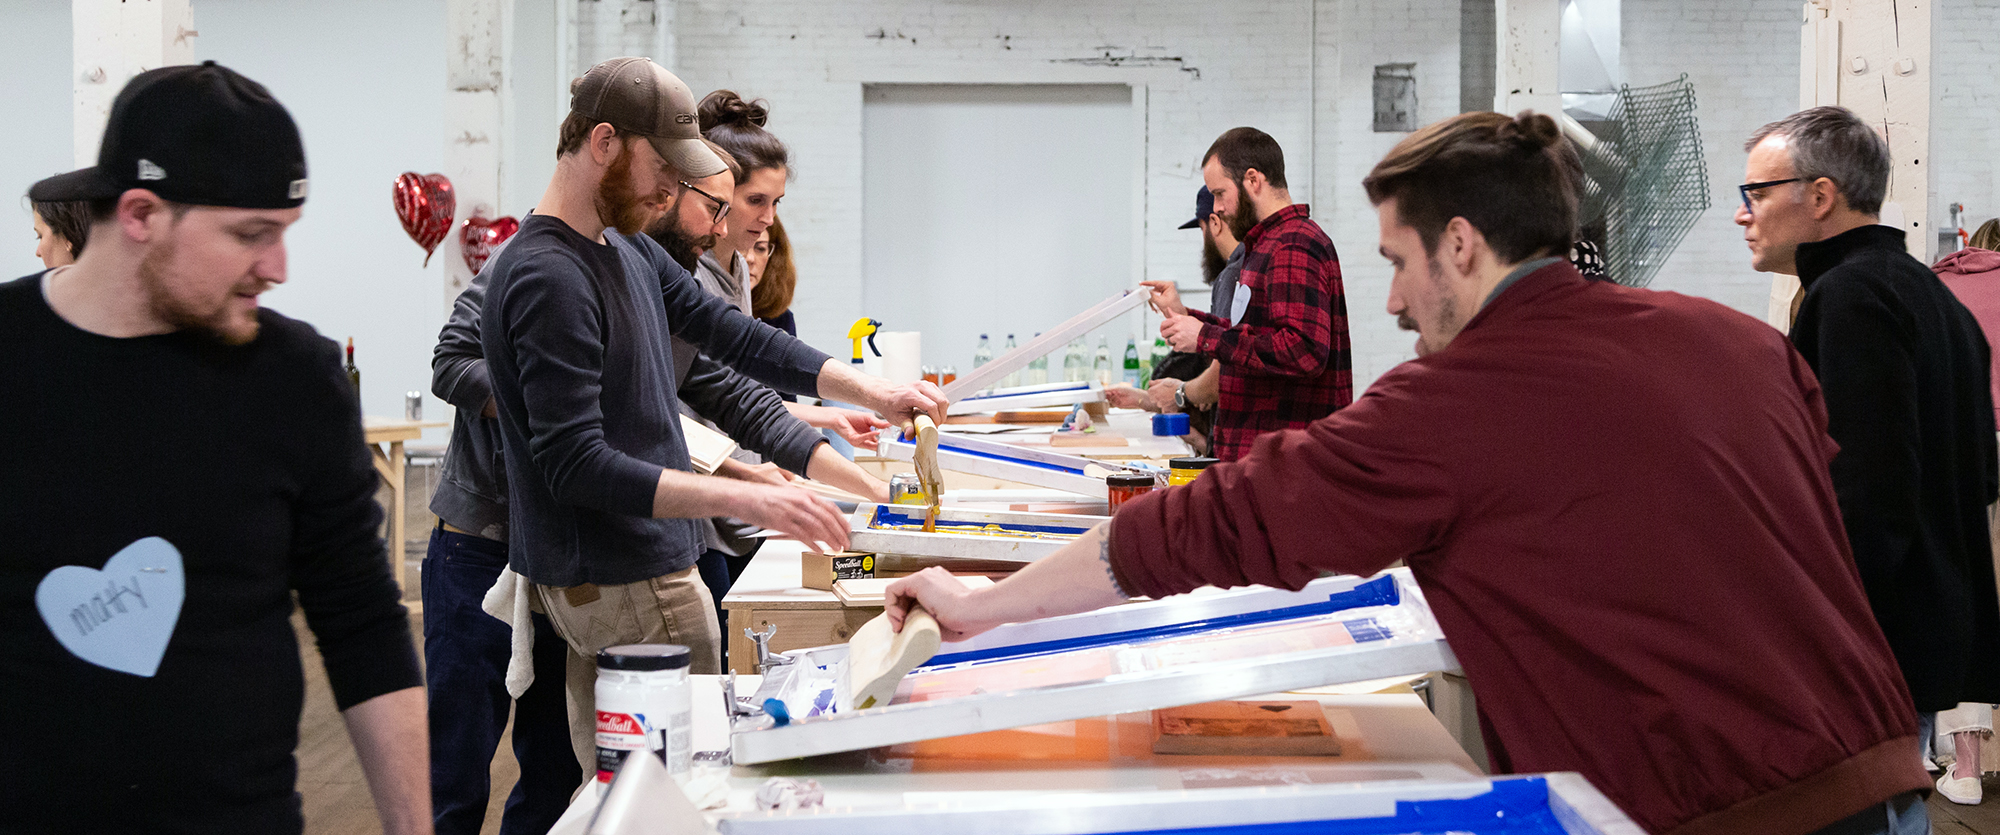 People screen printing at Columbus Printed Arts Center